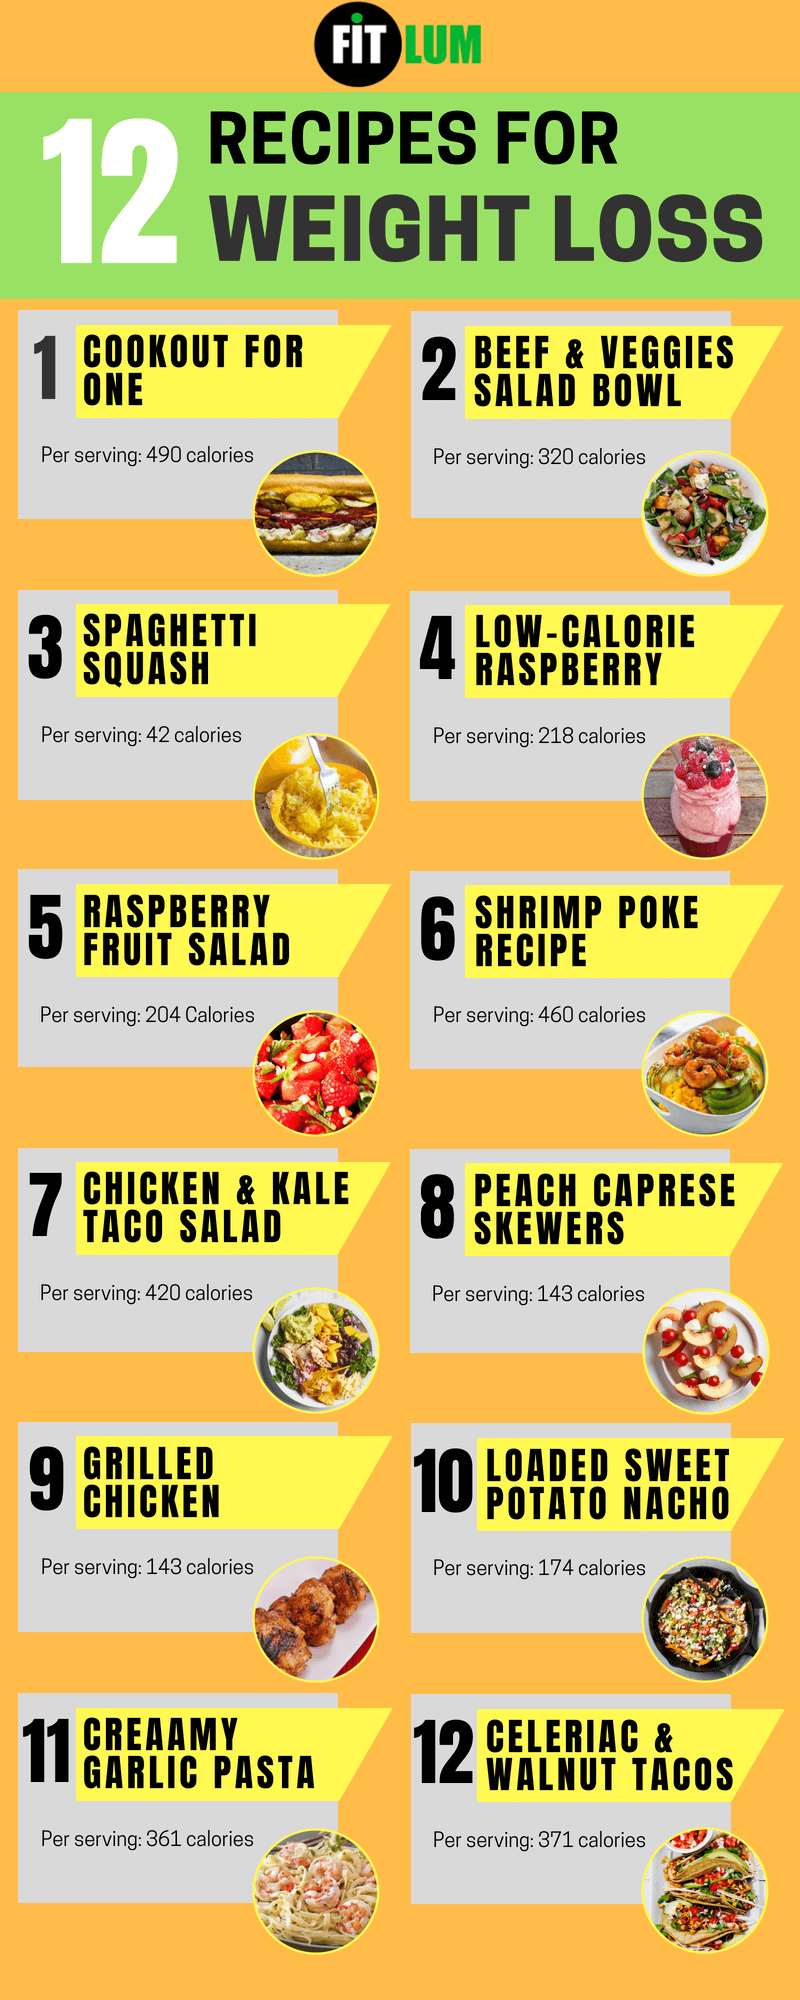 12 Best Weight Loss Recipes - Infographic